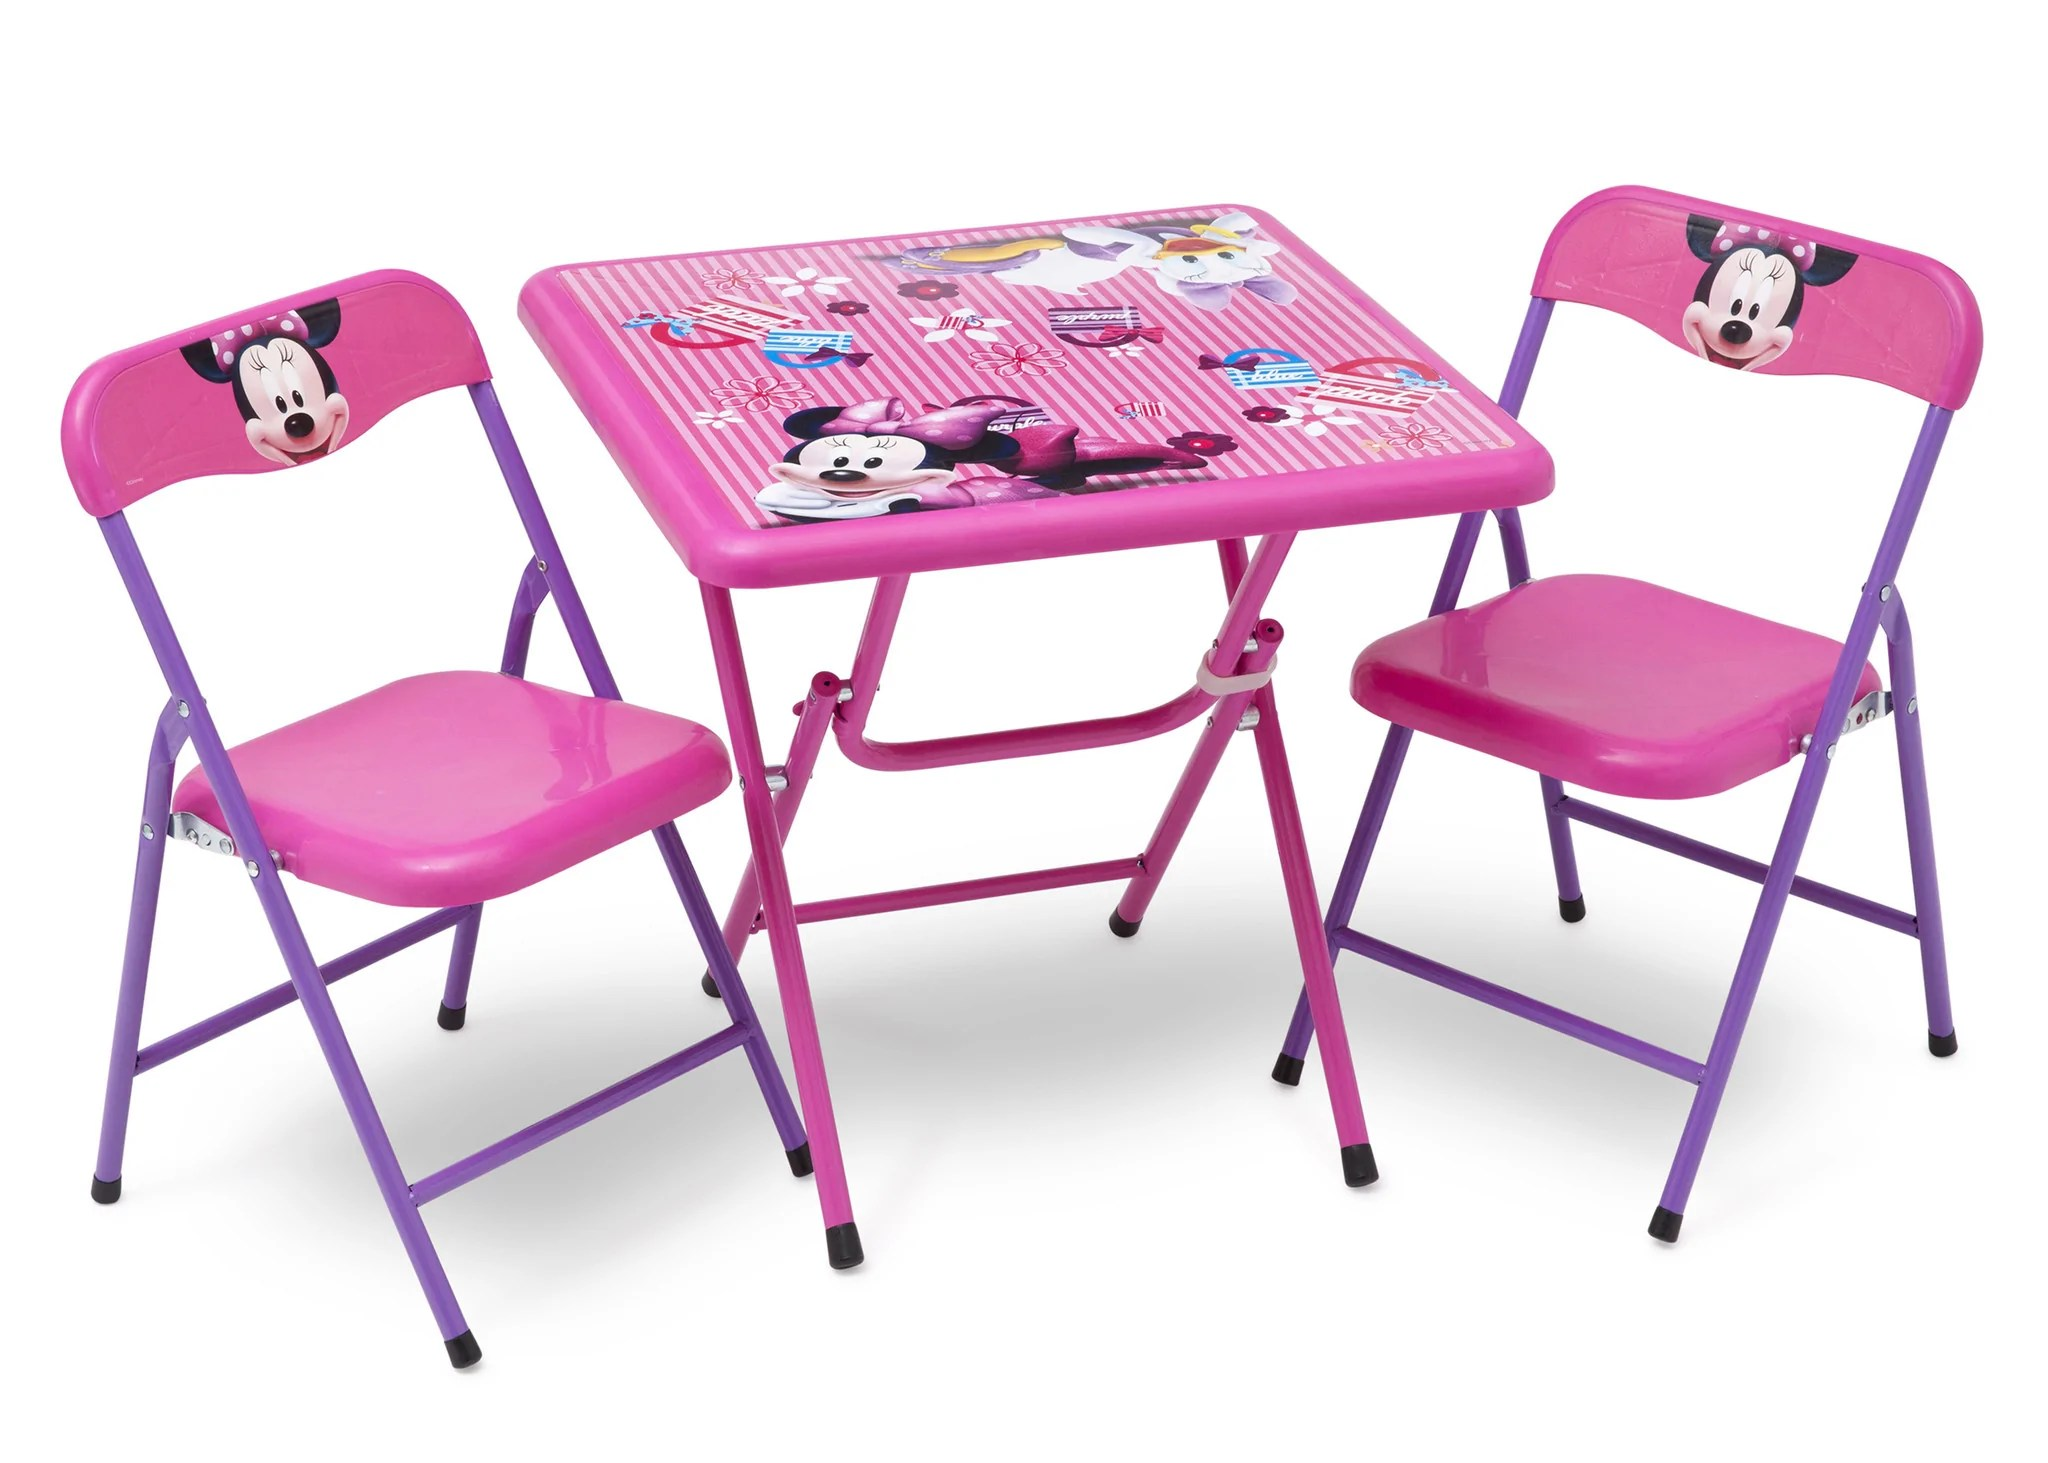 minnie table and chairs coleman folding chair with side mouse bedroom image of room decor